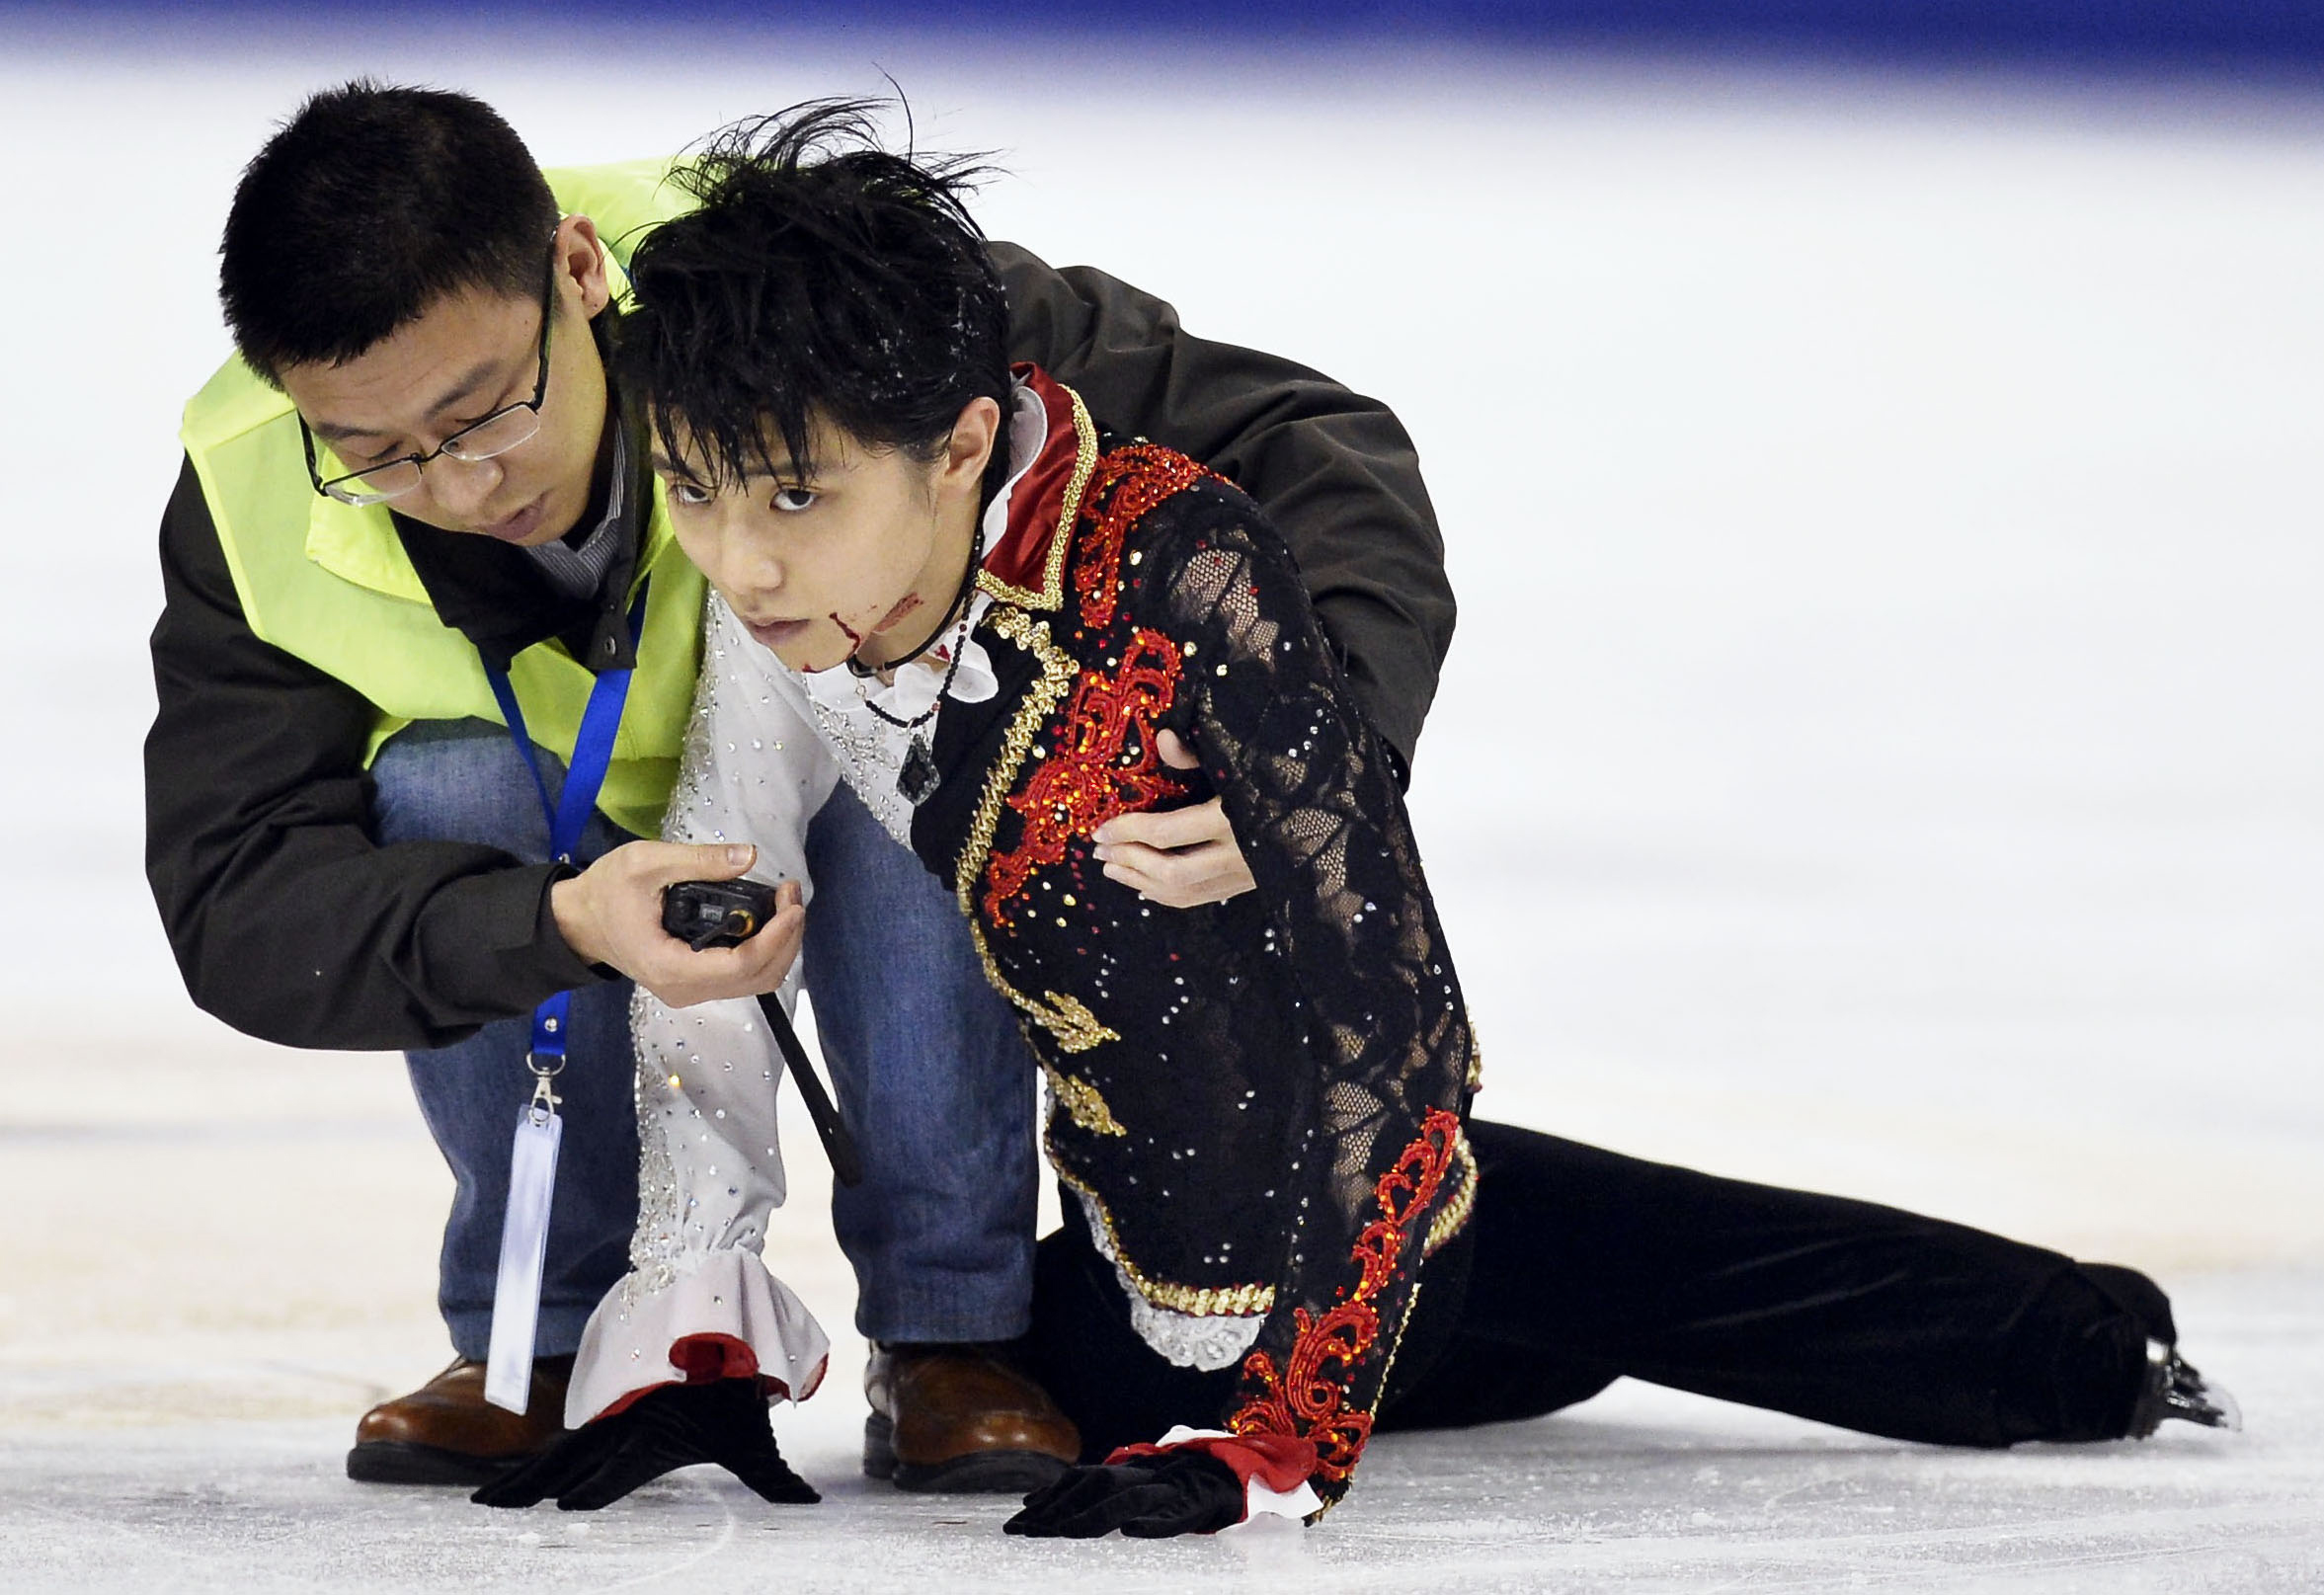 Yuzuru Hanyu of Japan is helped by a medical team member.  (AP Photo/Kyodo News)